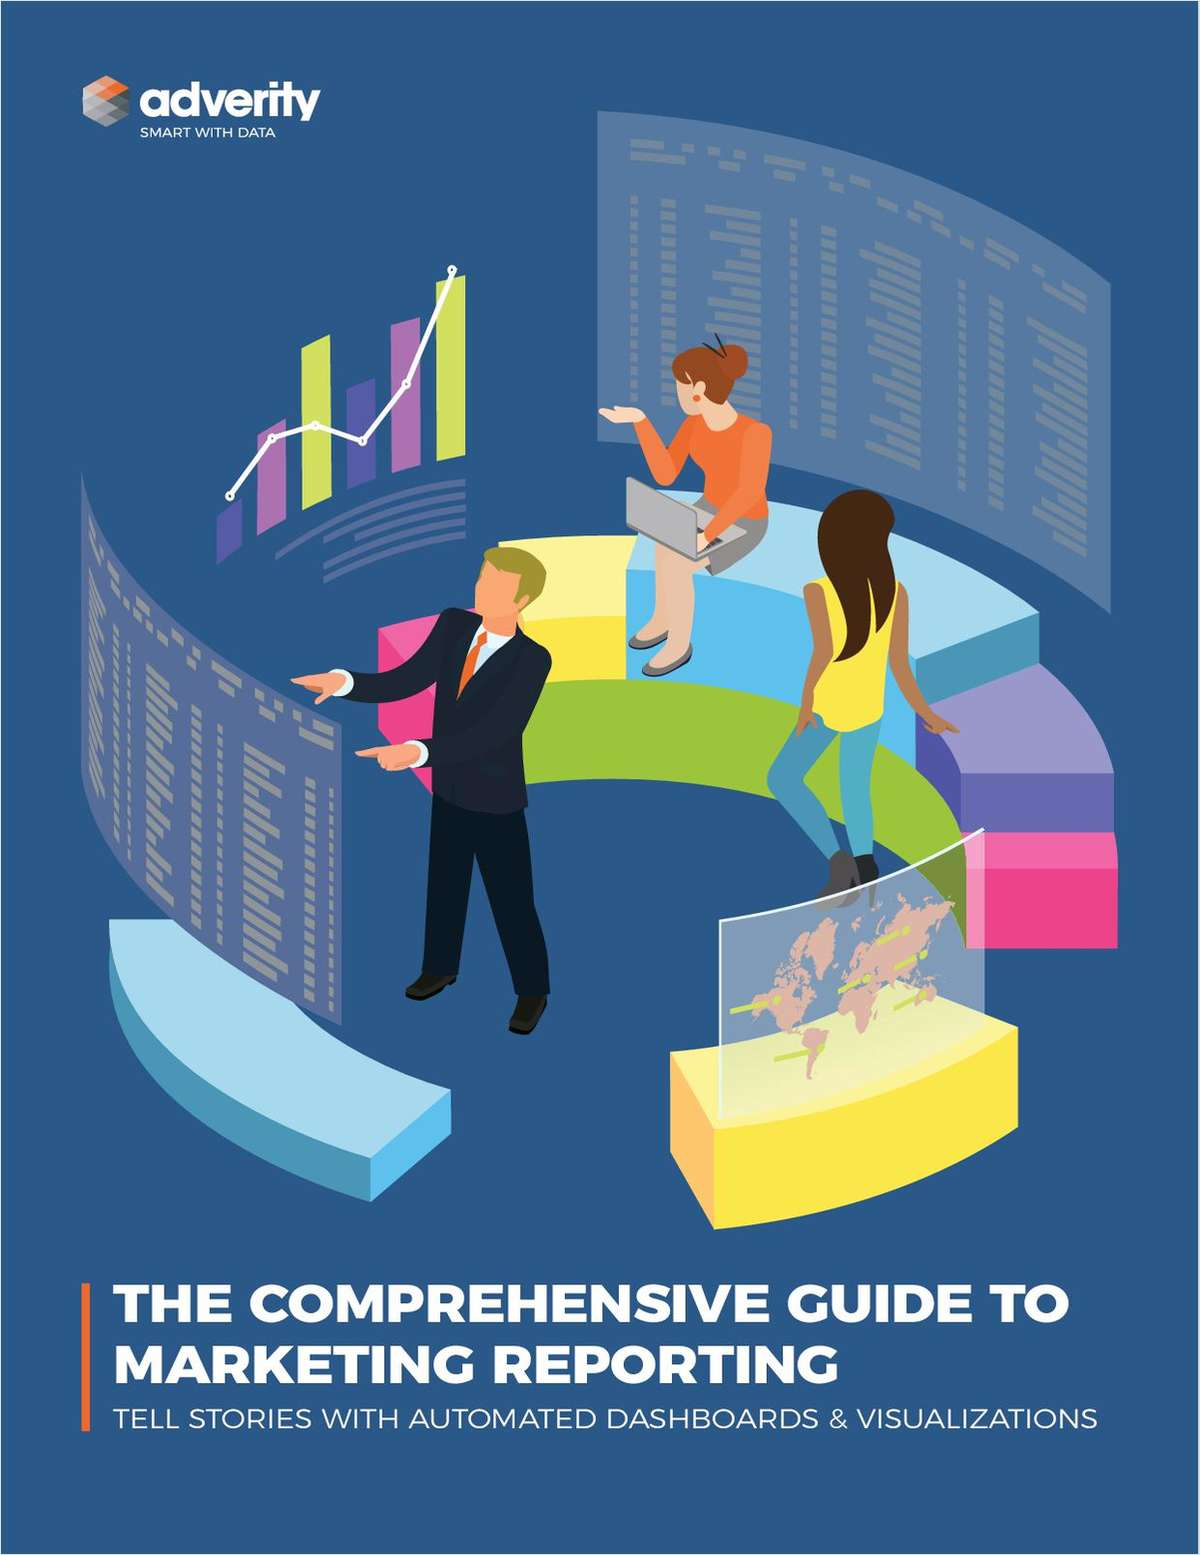 The Comprehensive Guide to Marketing Reporting